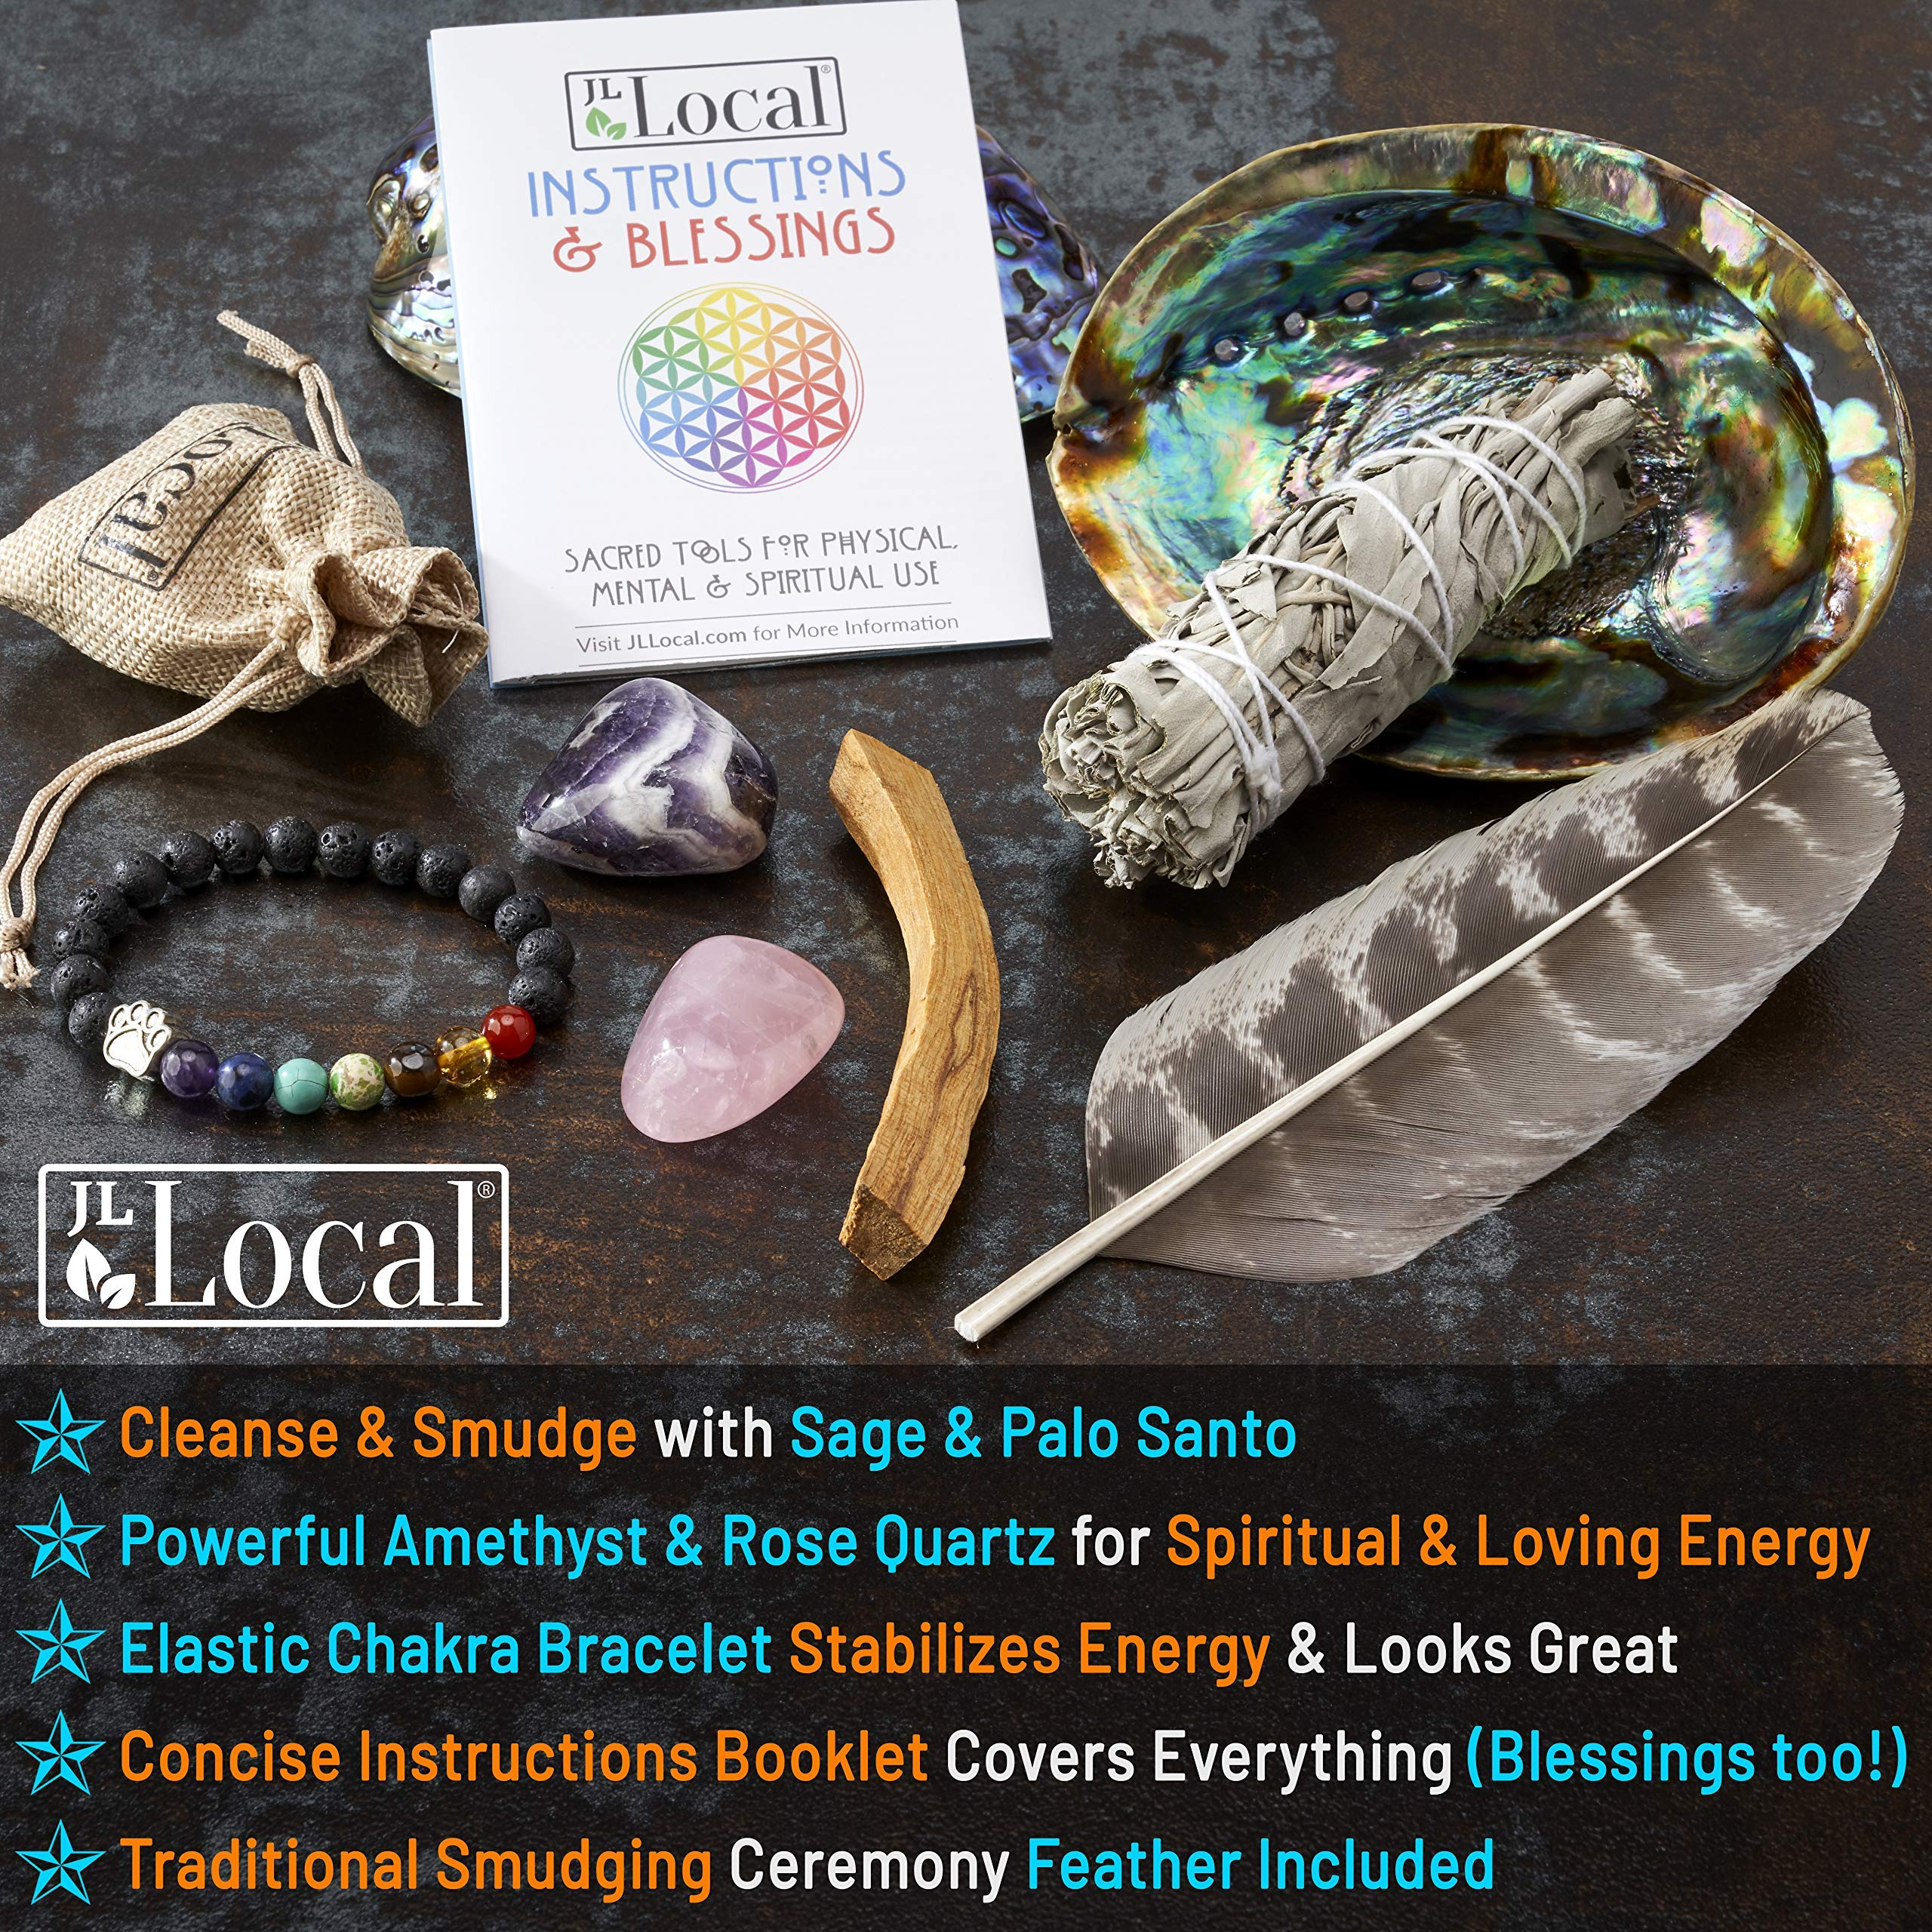 JL Local Chakra Smudging Kit - 10 Items Including White Sage Smudge Sticks, Palo Santo, Amethyst, Rose Quartz, Abalone Shell, Stand & Gift by JL Local (Image #3)